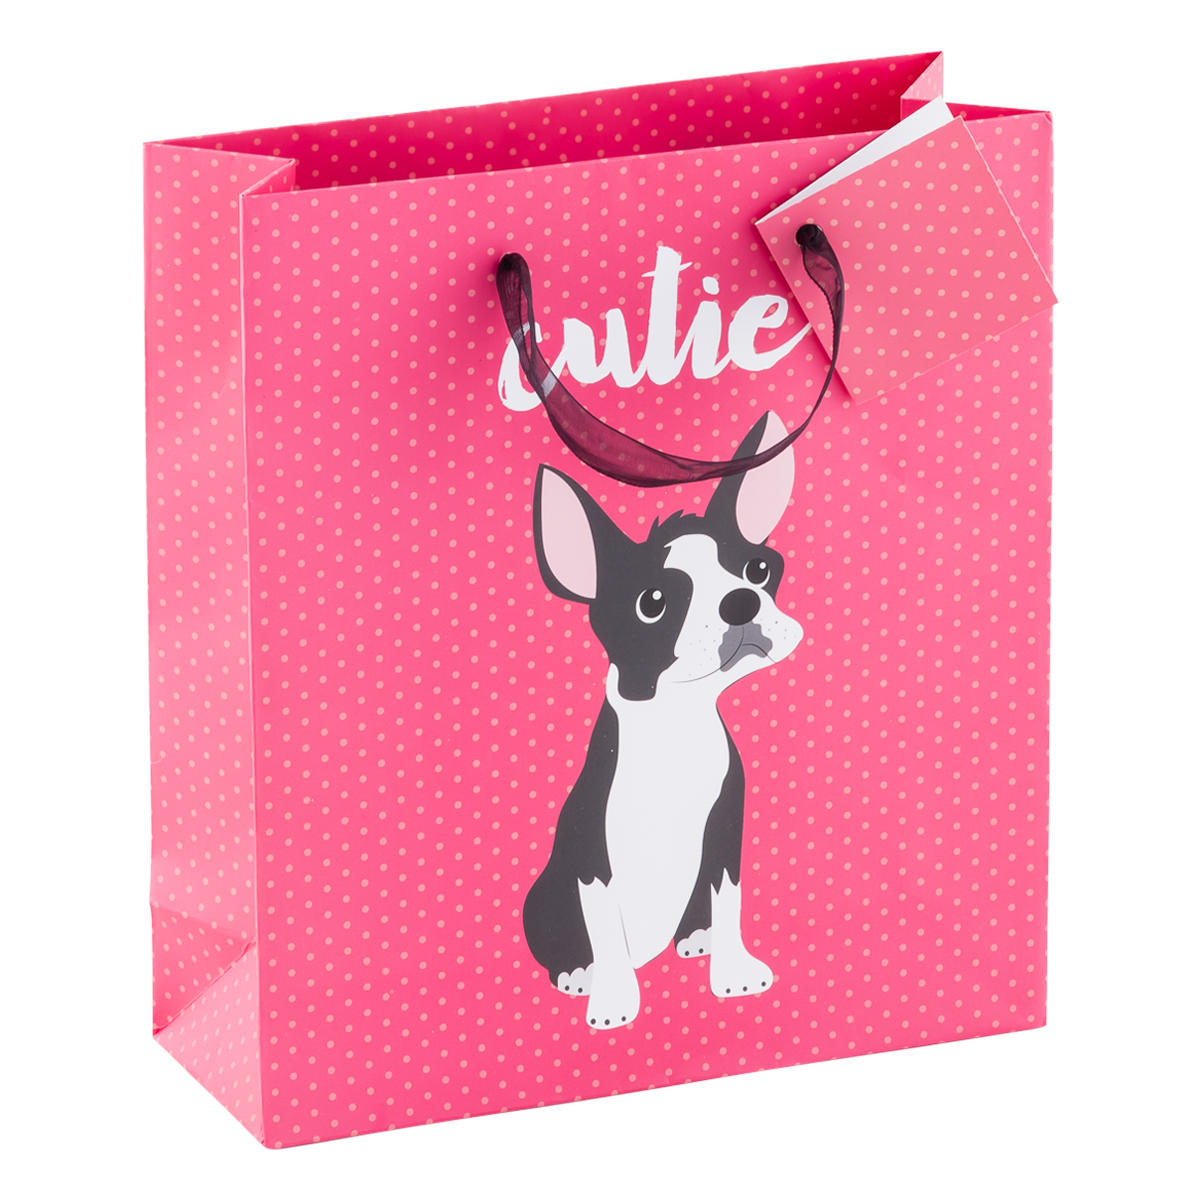 Tote Cutie Dog Pink